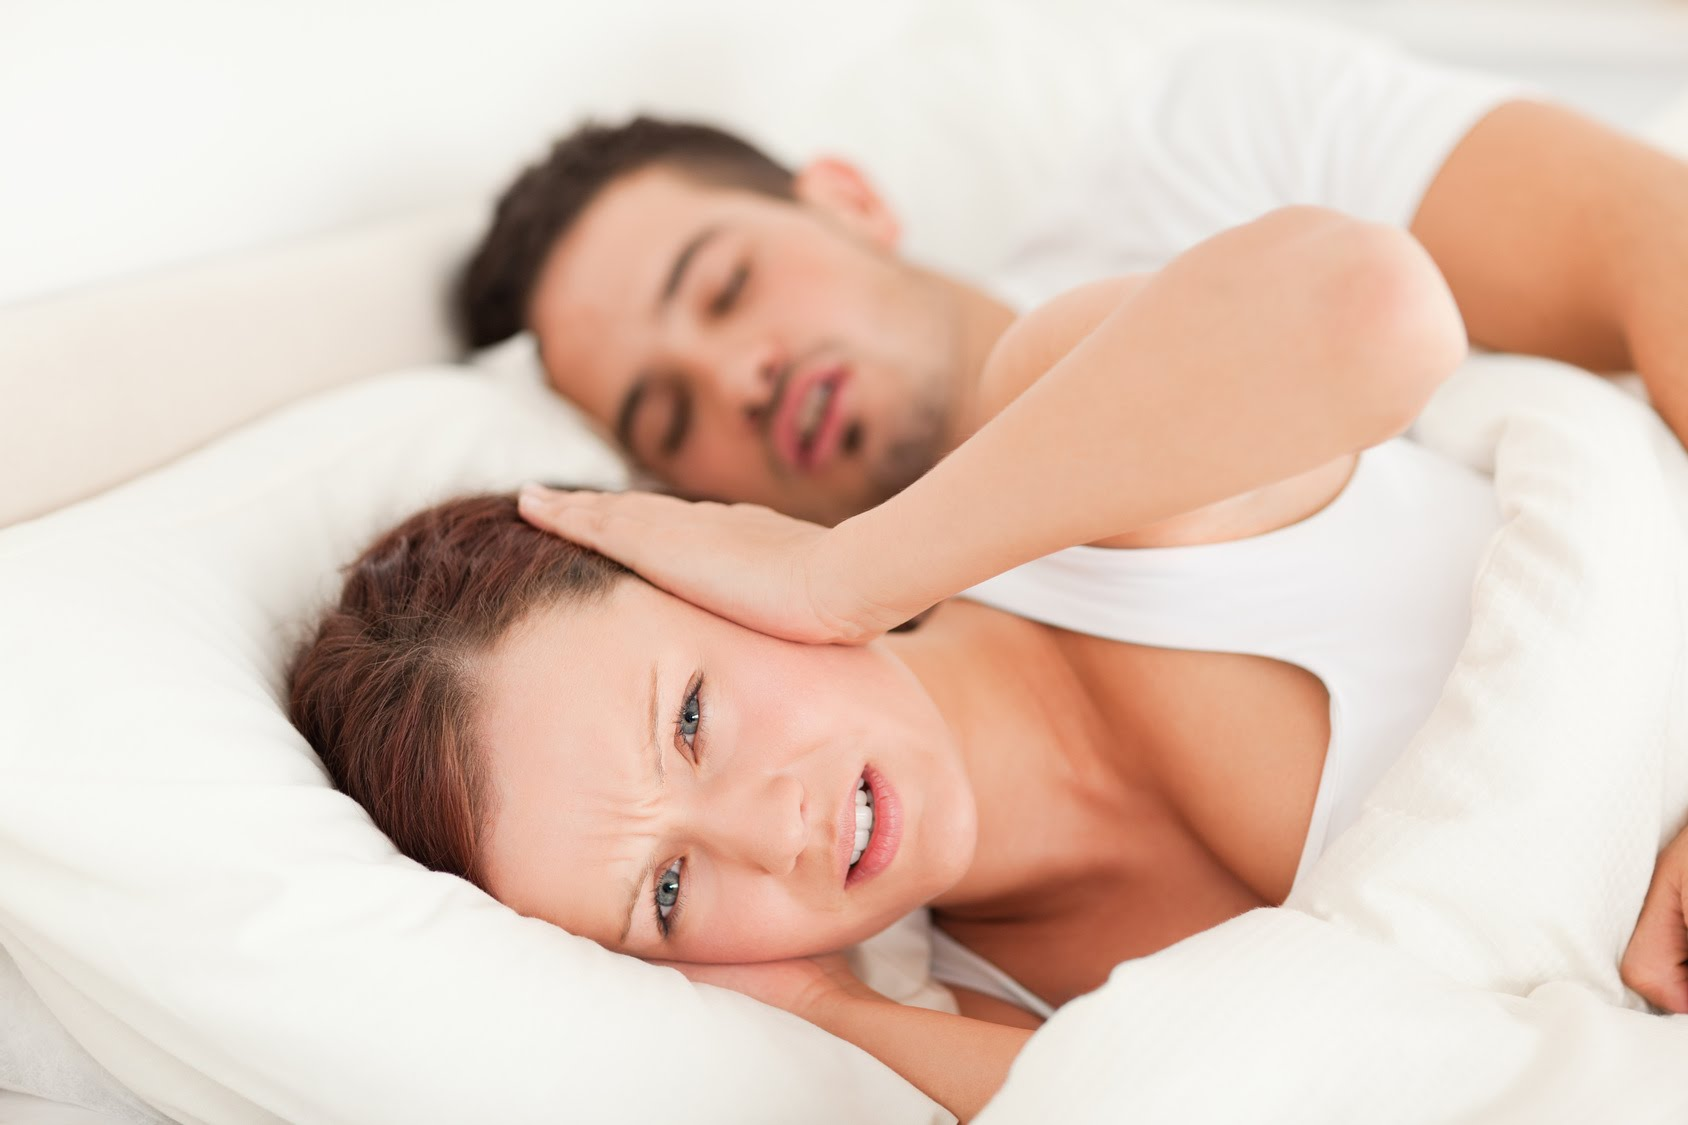 Stop Snoring Exercise Program Reviews